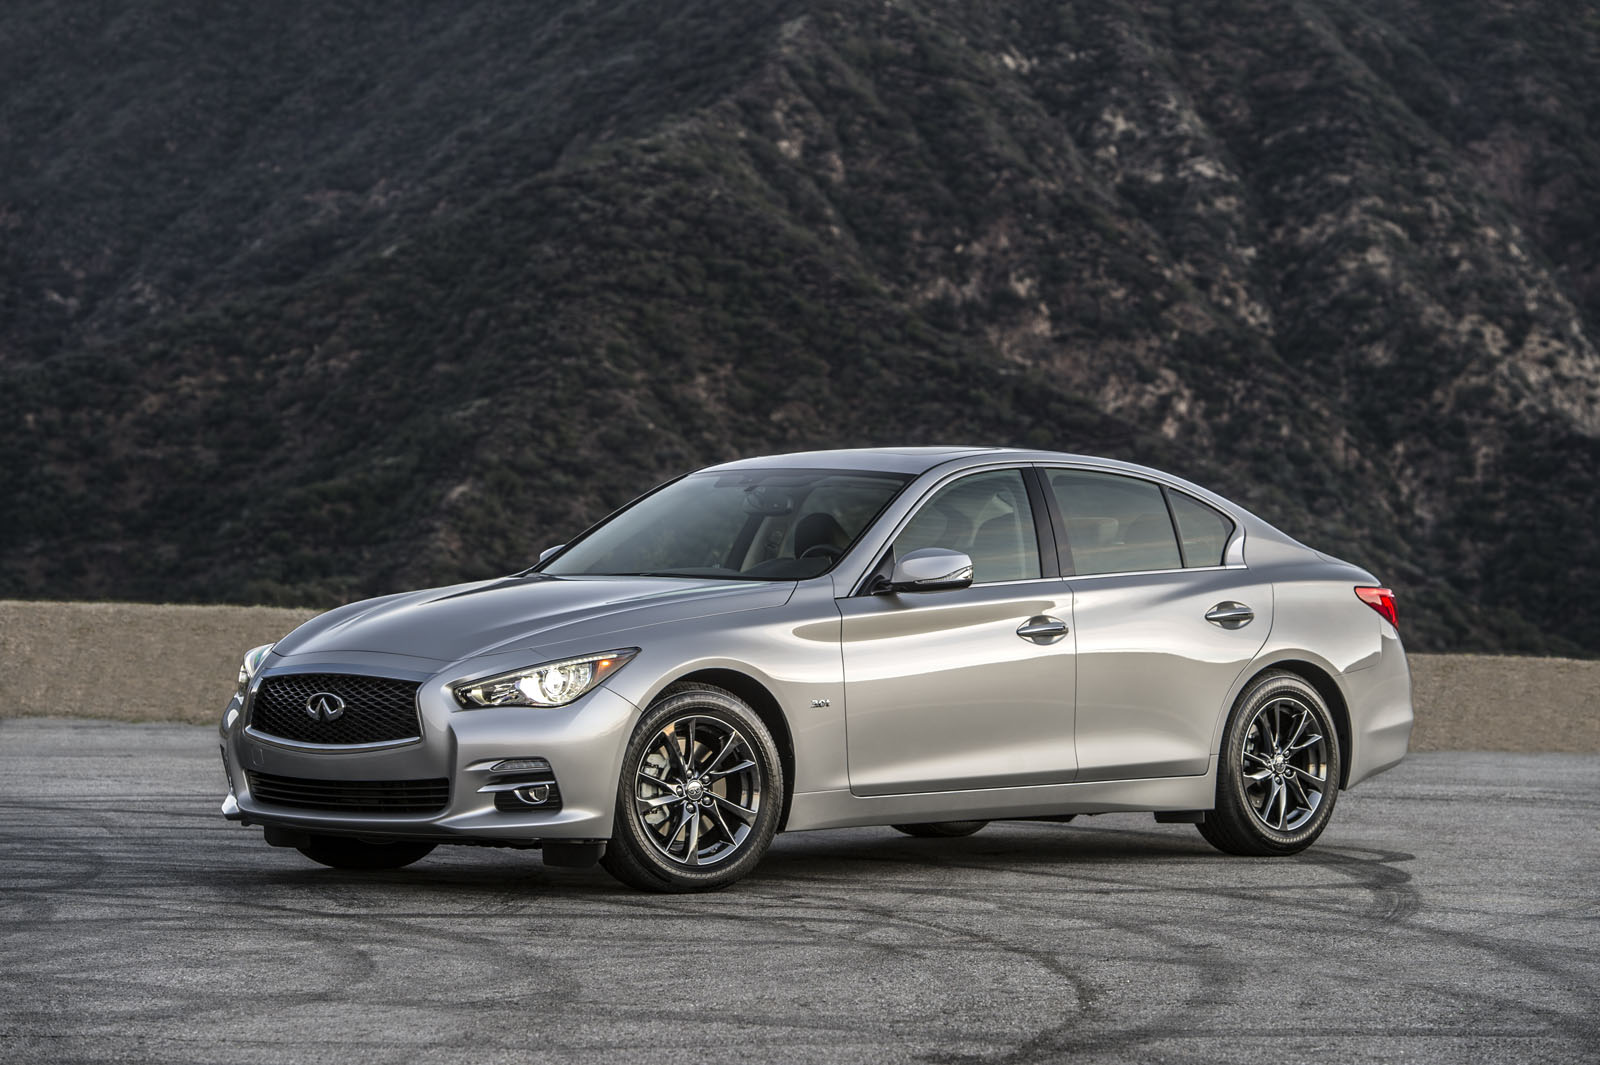 infiniti rolls out new q50 qx80 signature editions in chicago carscoops. Black Bedroom Furniture Sets. Home Design Ideas